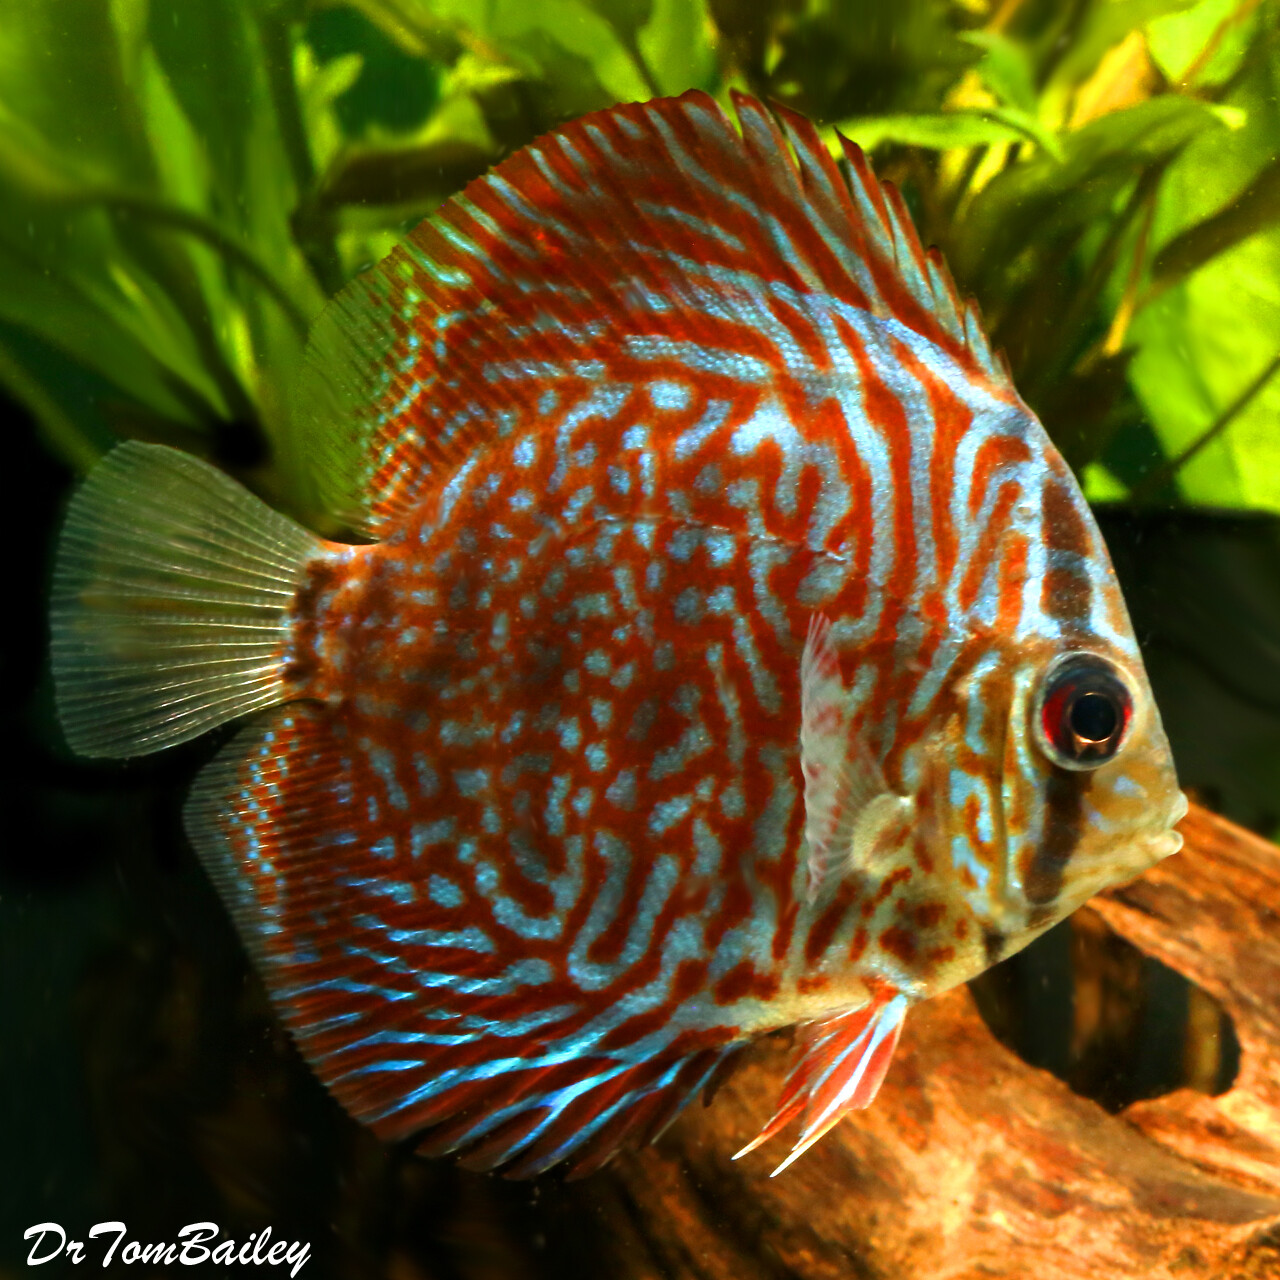 "Premium Tiger Red Discus, 2.5"" to 3"" long"